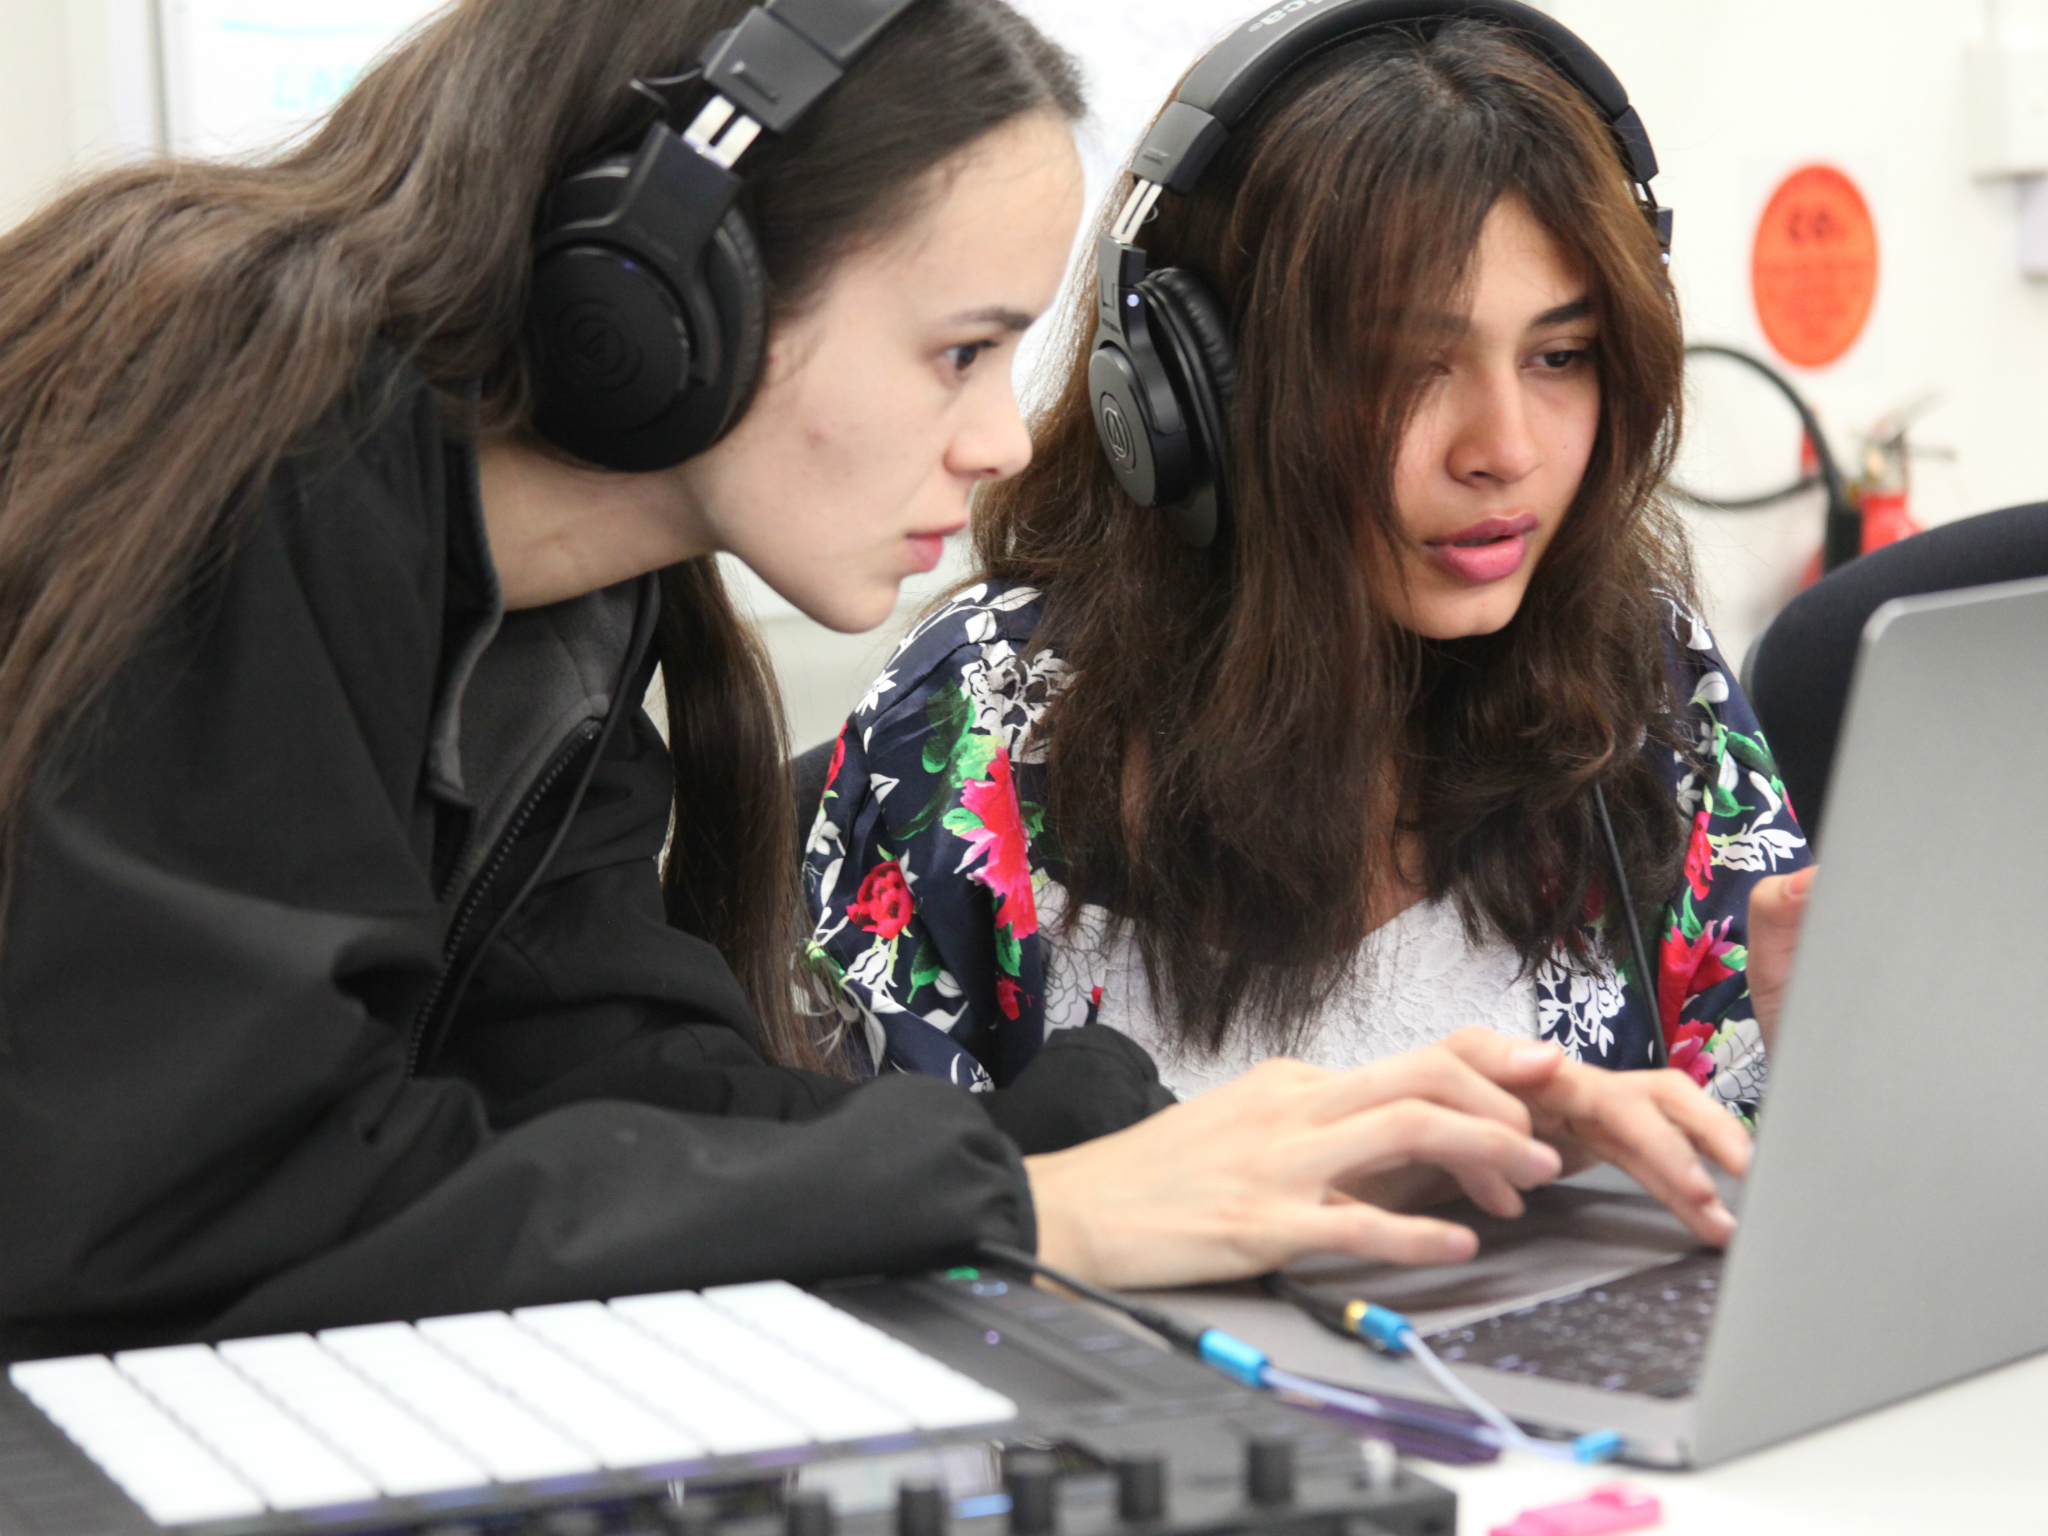 Girls at a an electronic music workshop